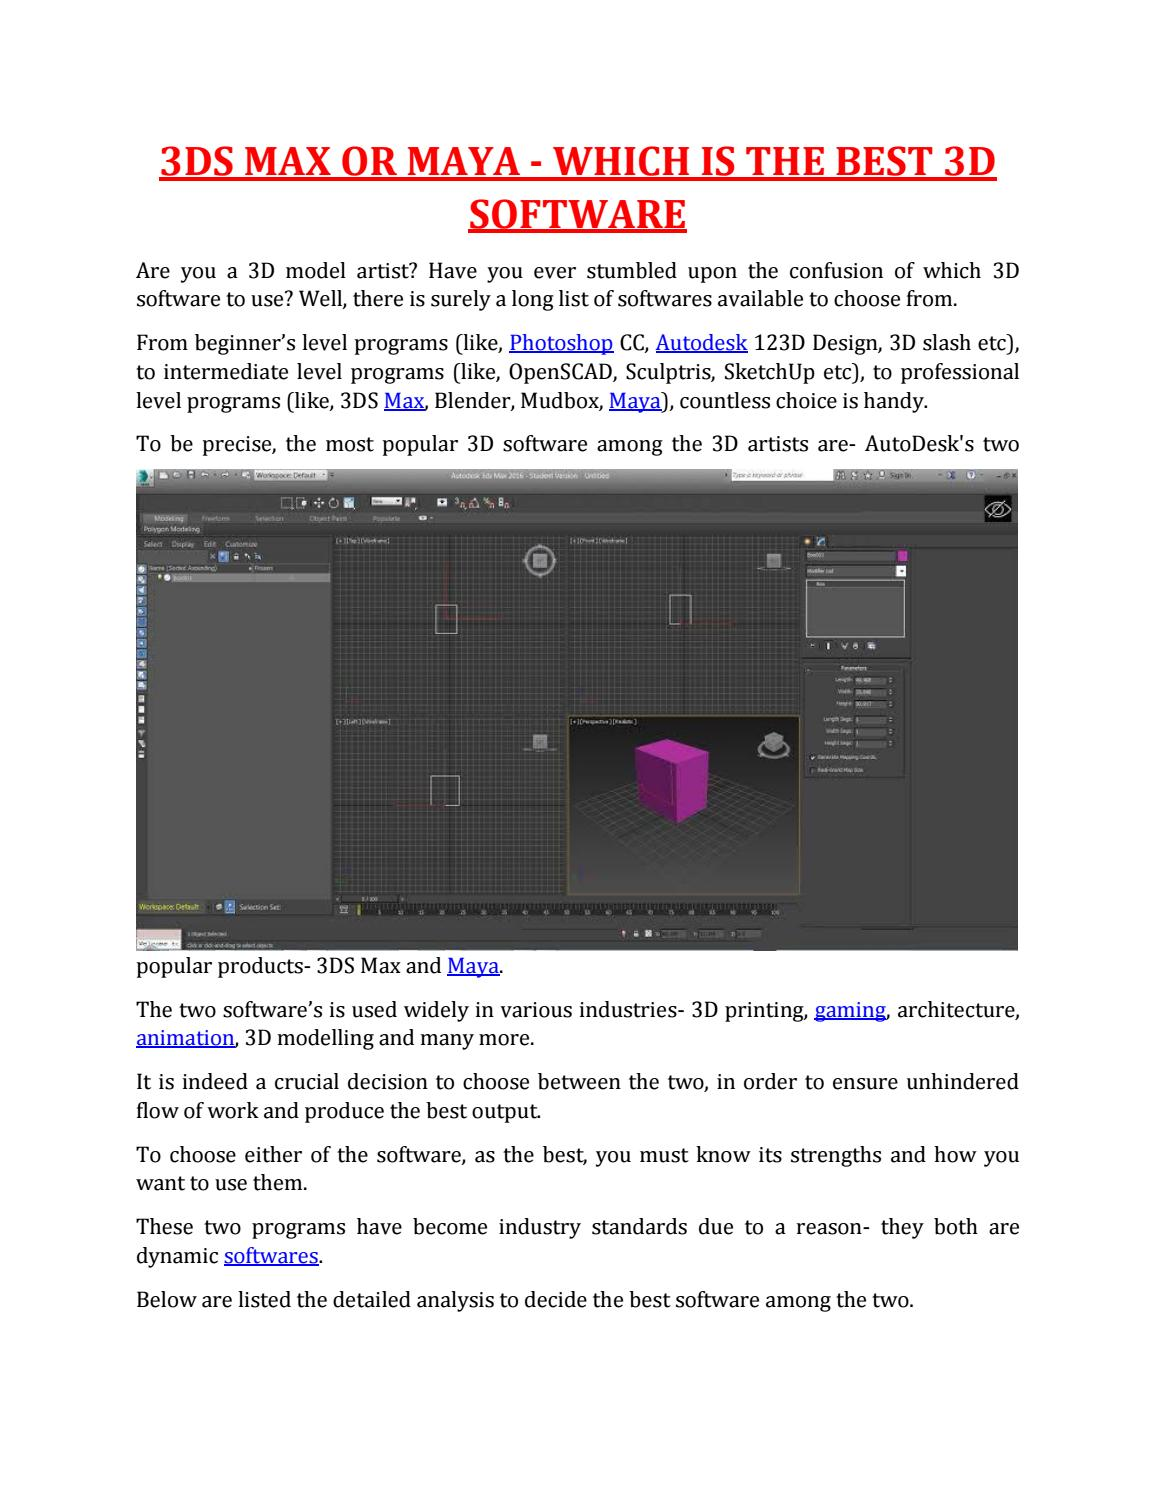 3DS MAX OR MAYA WHICH IS THE BEST 3D SOFTWARE by MAAC